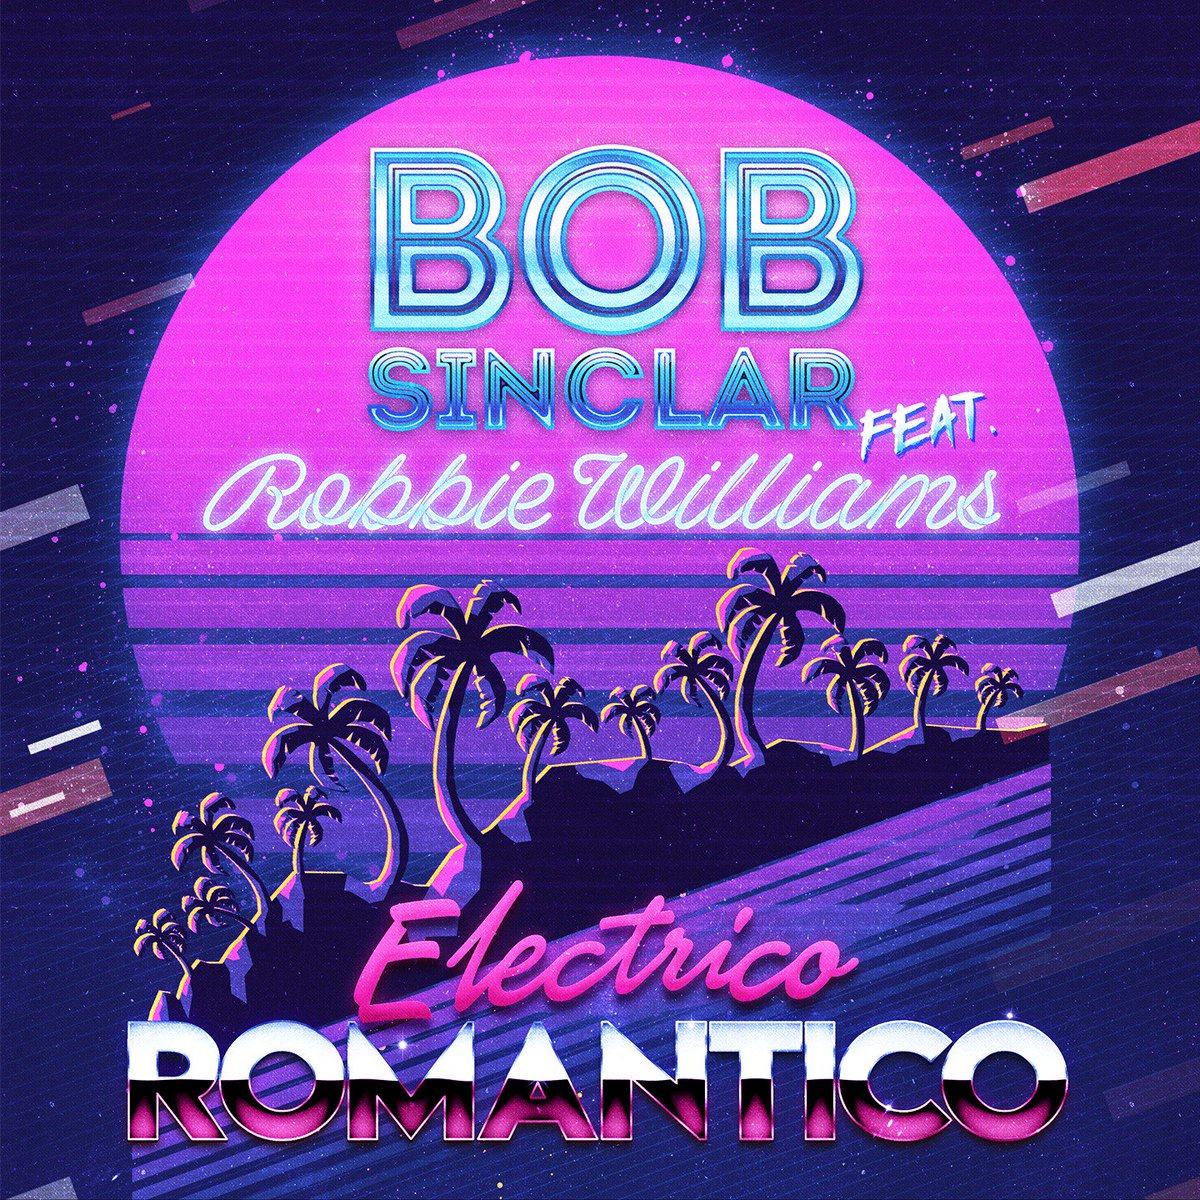 So honoured to sing on the new track from @bobsinclar. Give it a spin on the link below and let me know what you think x https://t.co/Ah1HRKZeMd https://t.co/5bFyTu9KLg